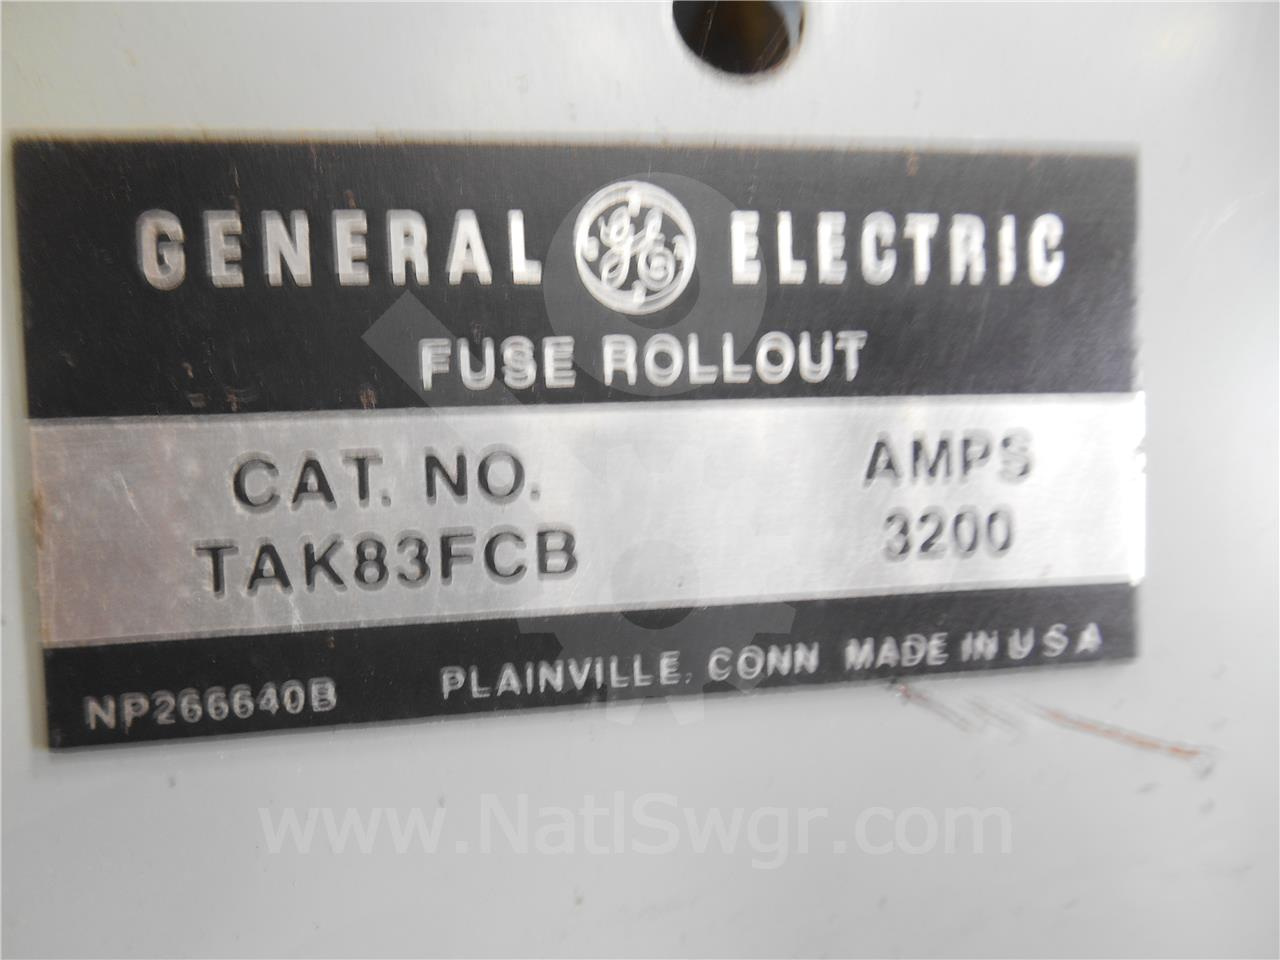 3200A GE / General Electric AKR-75 ROLL OUT FUSE ELEMENT